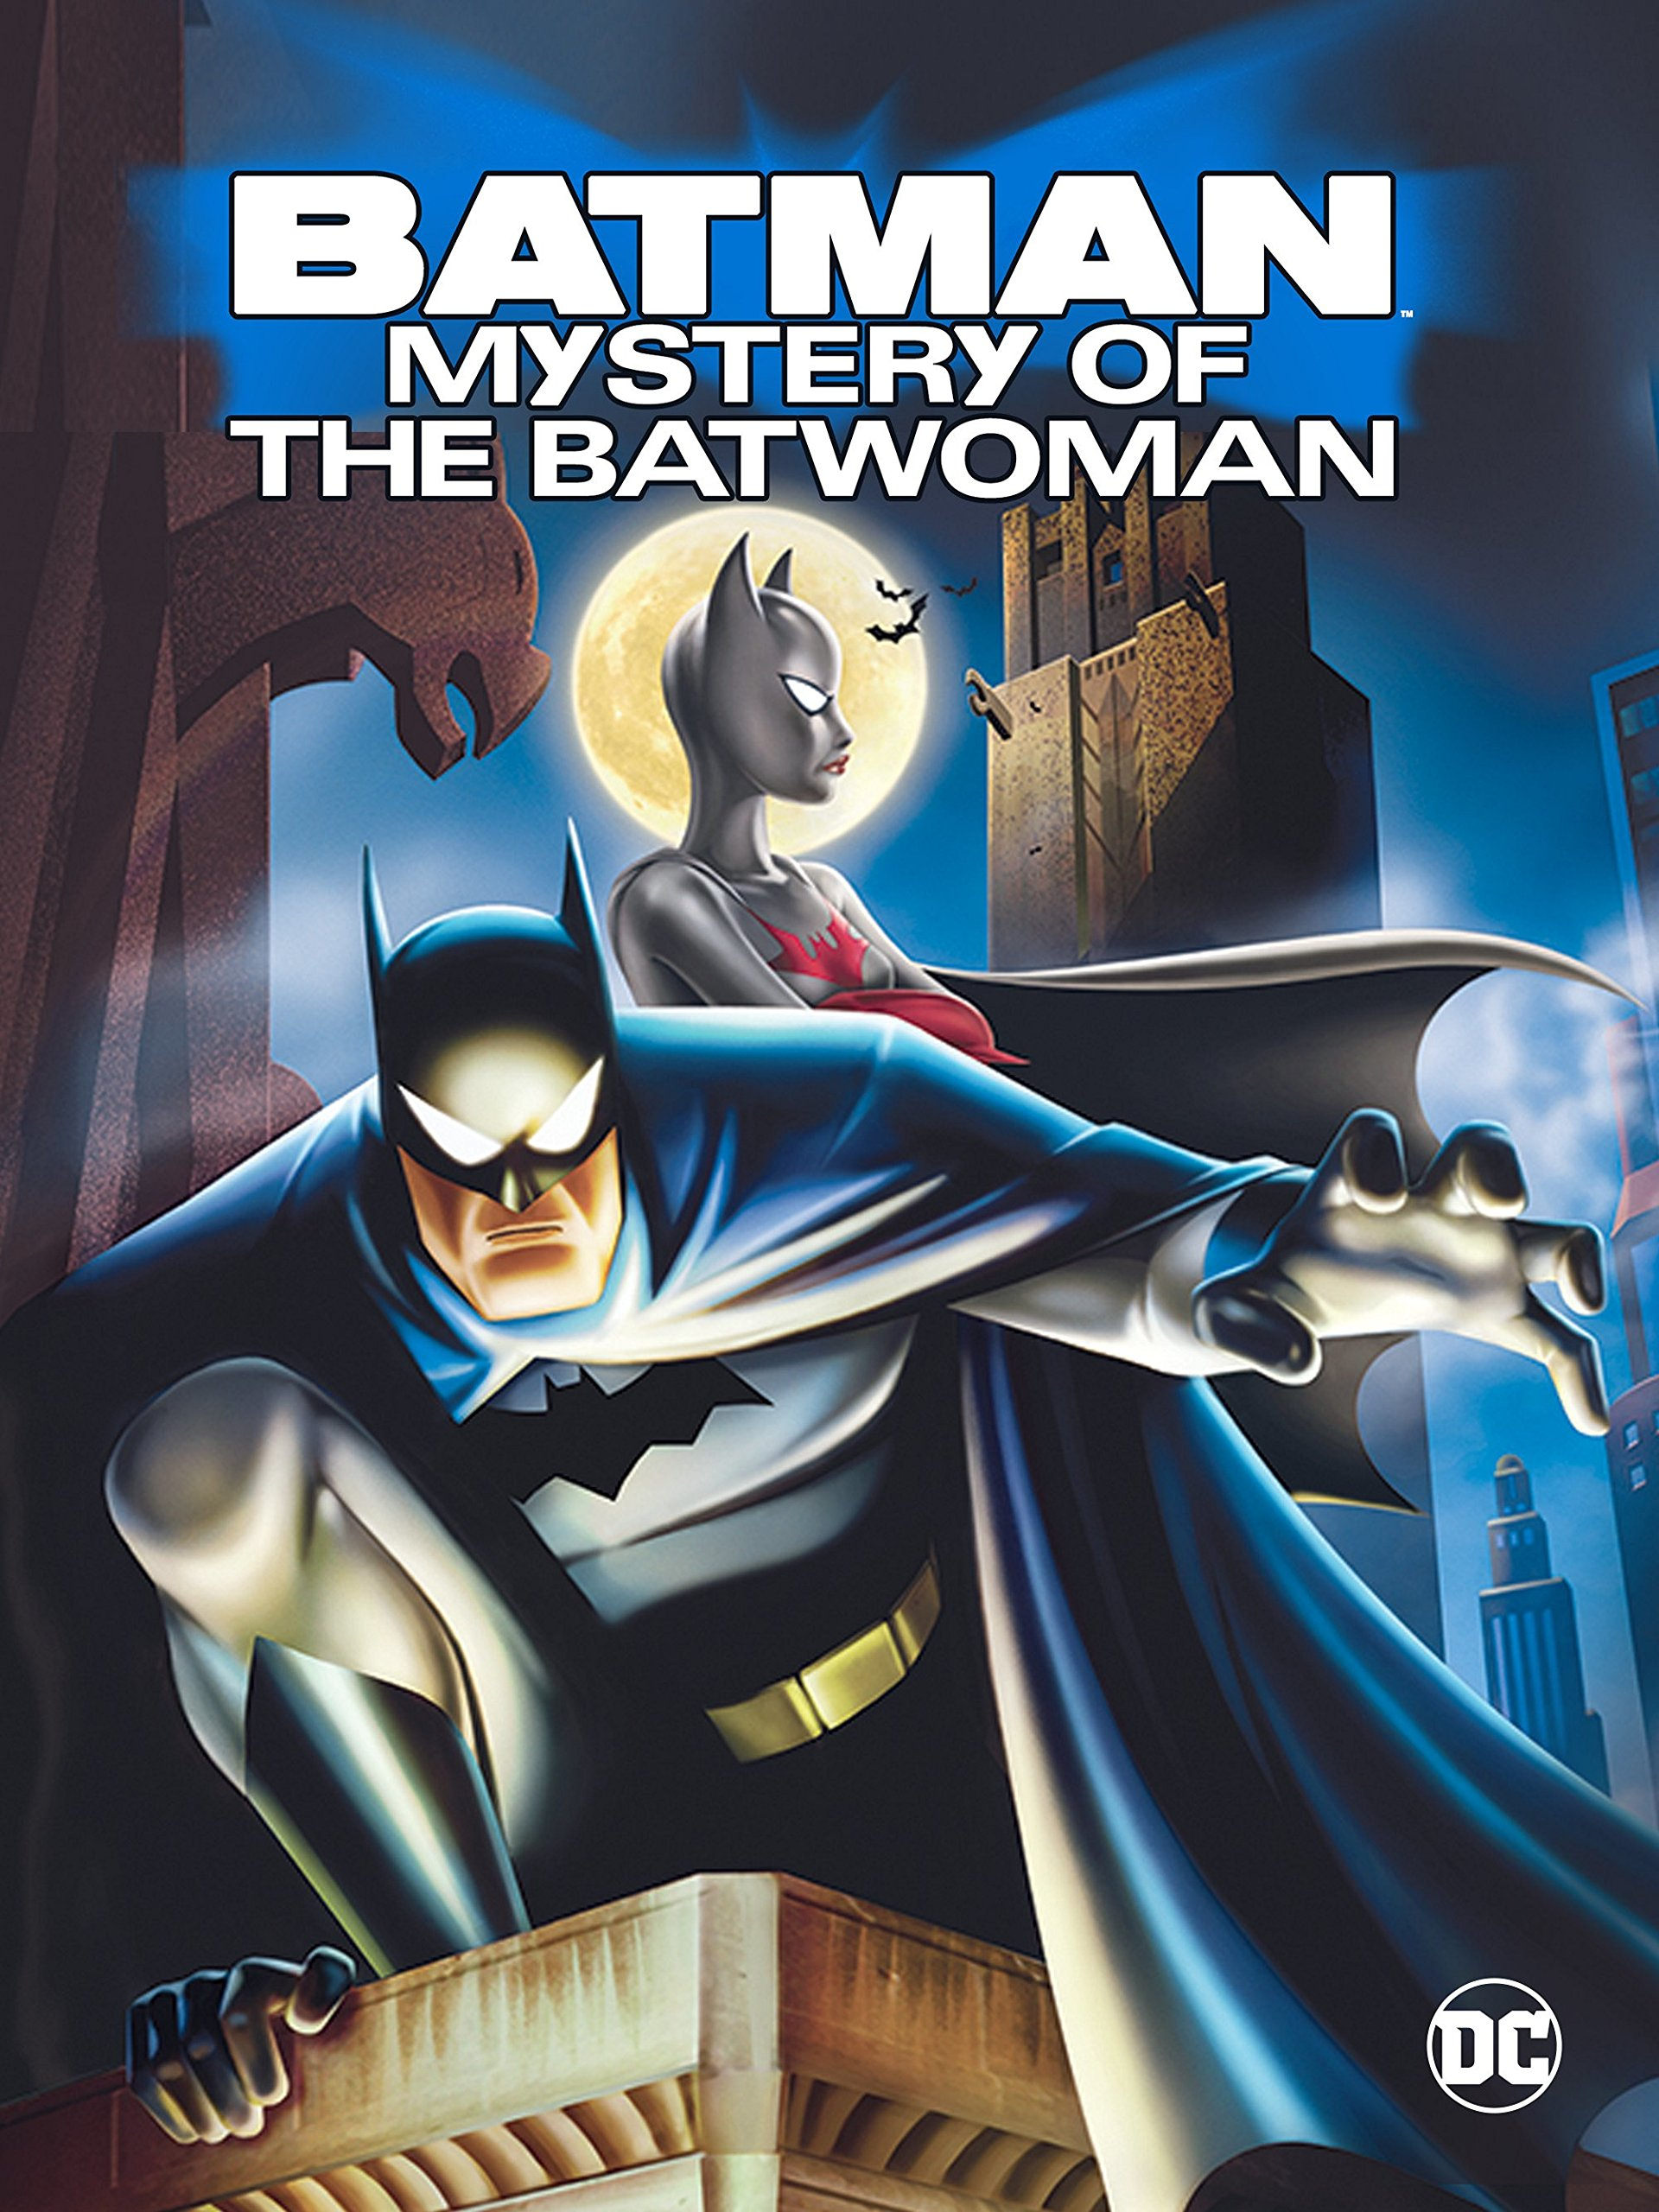 Batman - Mystery of the Batwoman on Amazon Prime Instant Video UK